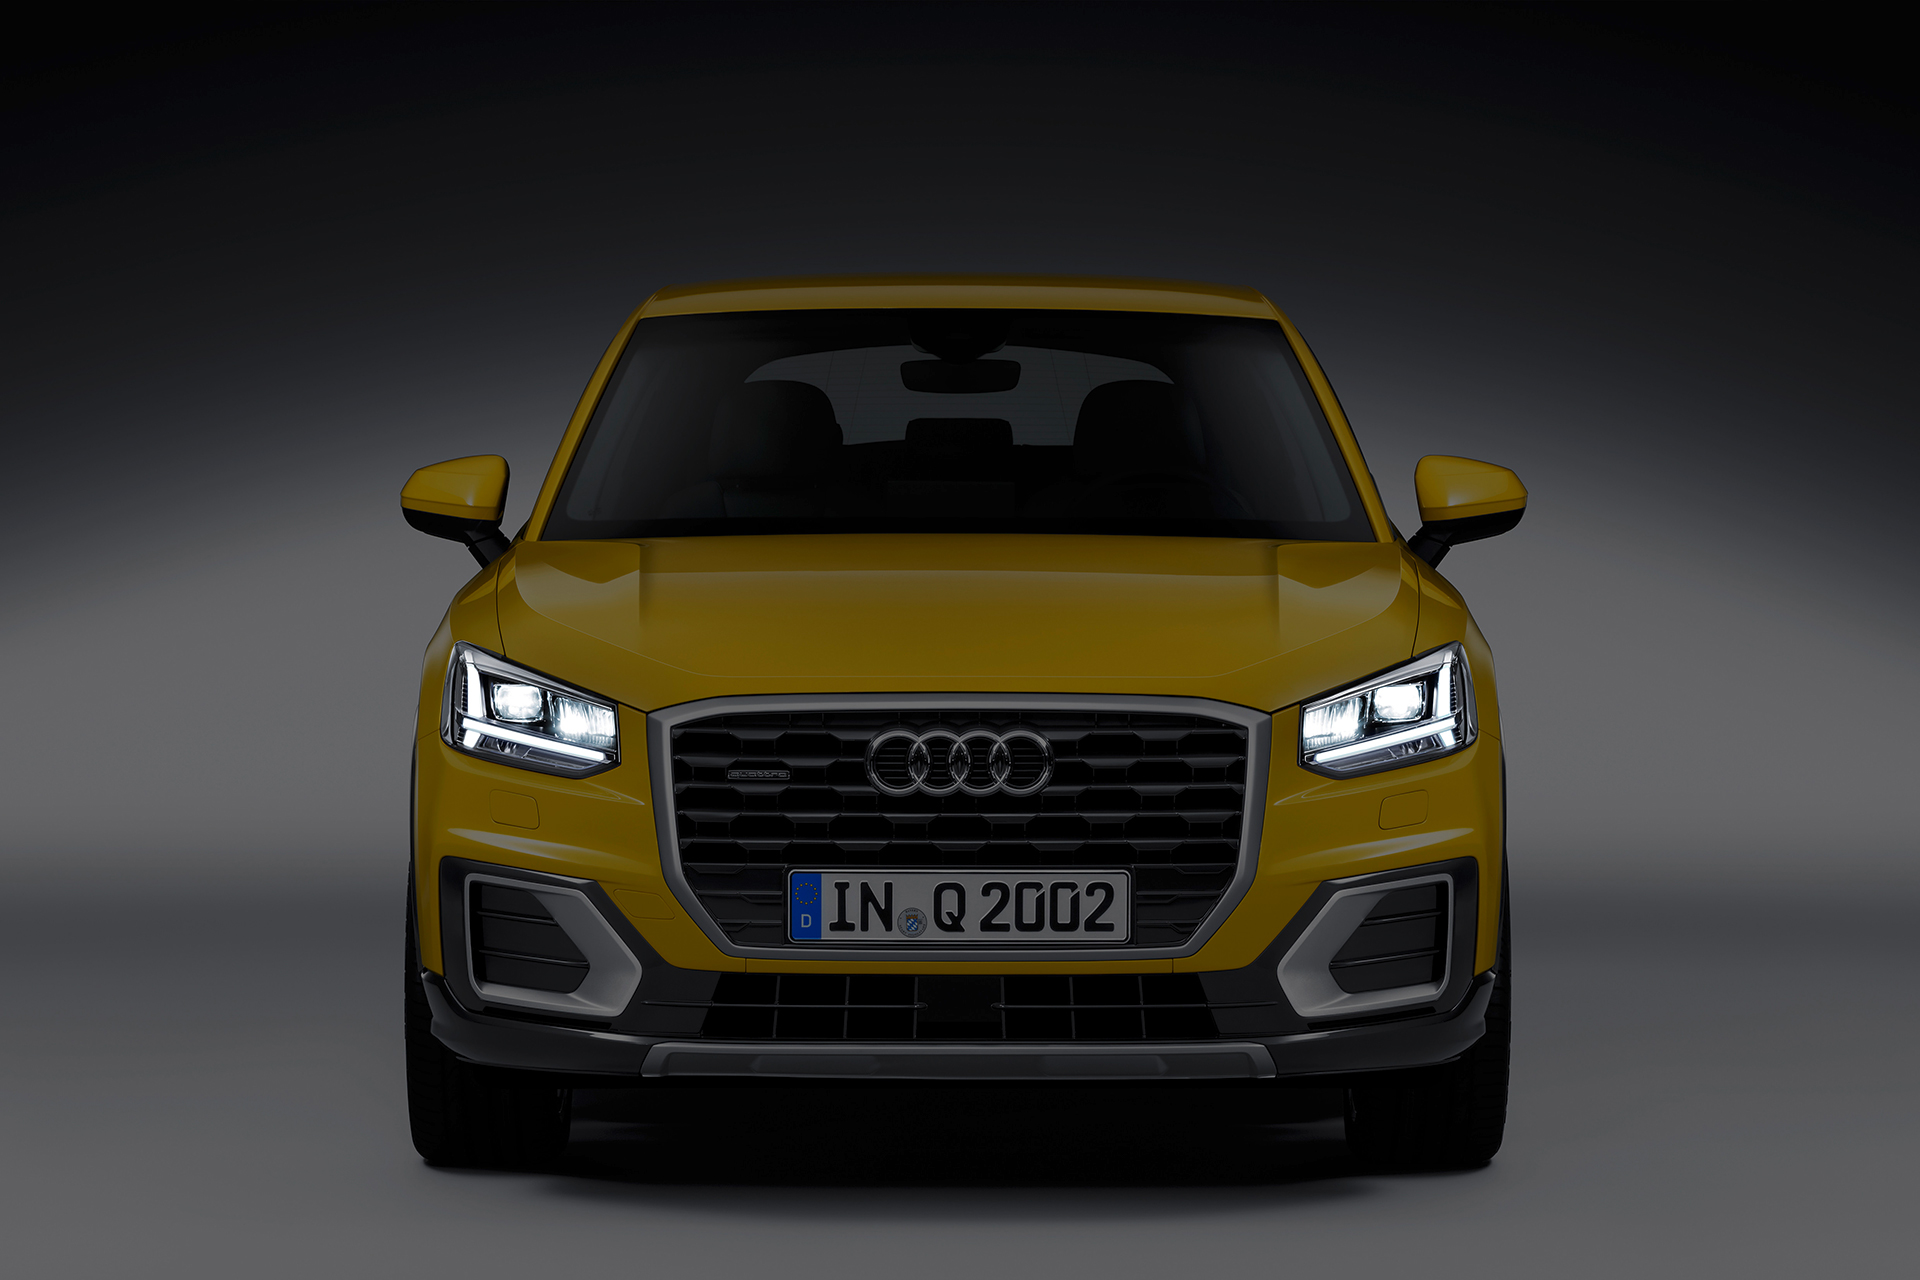 Audi Q2 TDI quattro 2016 - front light / signature lumineuse avant